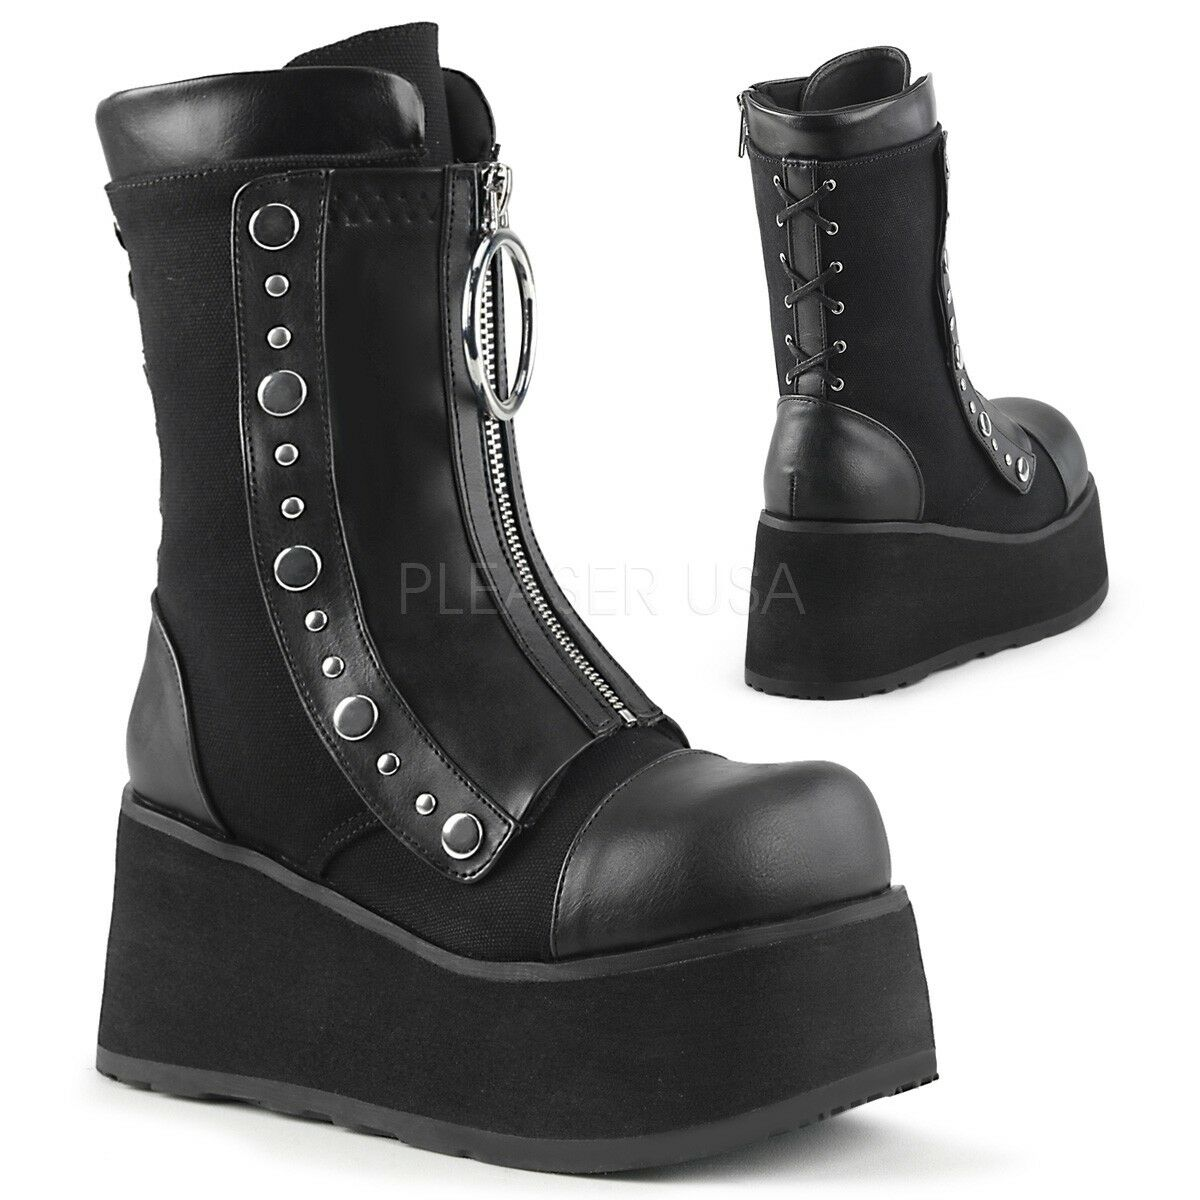 Demonia Clash 206 Black Faux Leather Canvas Hidden Zip Gothic Platform Calf Boot